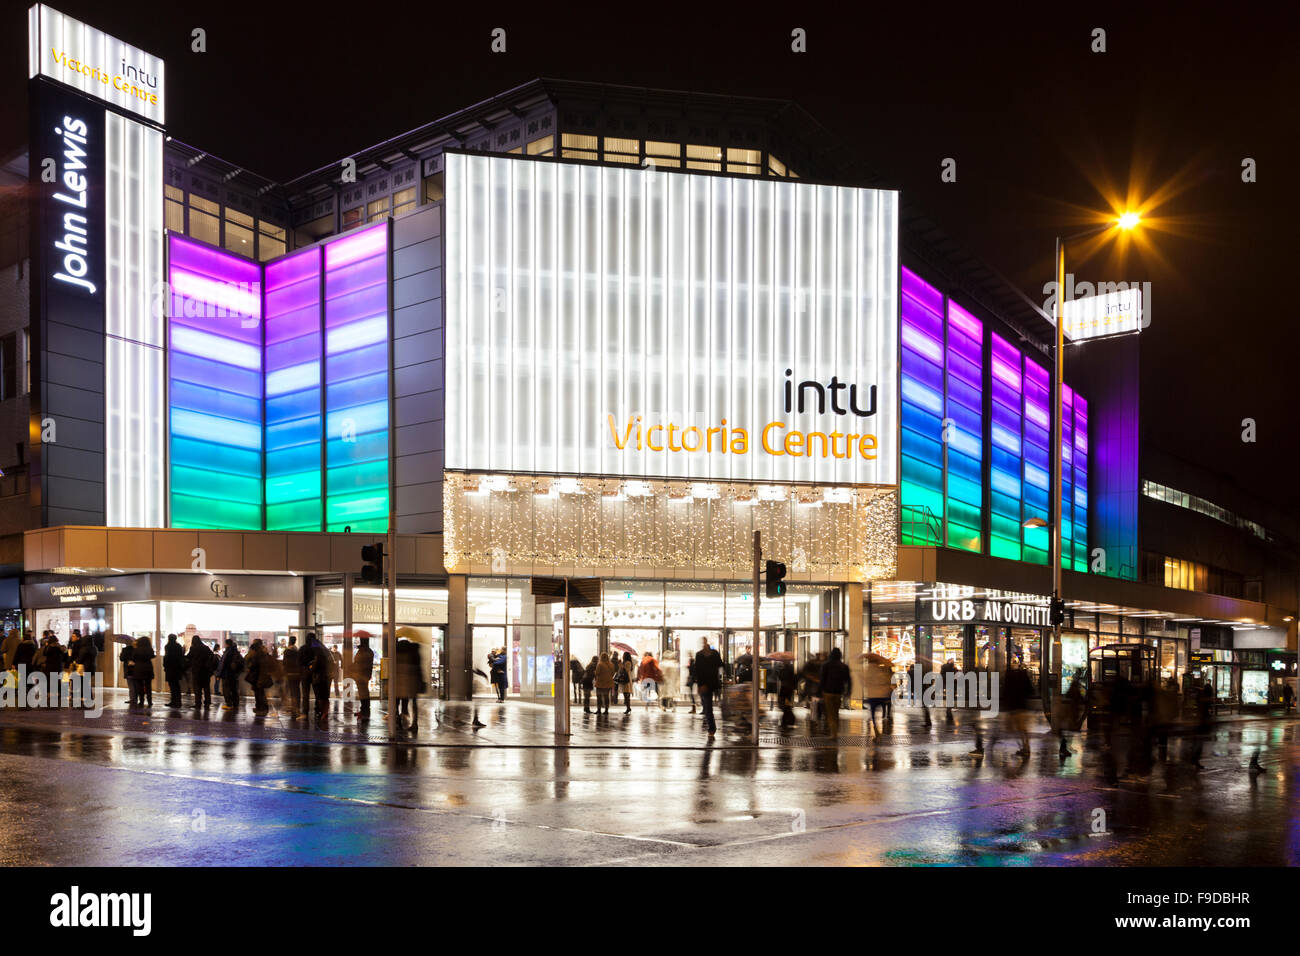 intu Victoria Centre open for late night shopping, Nottingham, England, UK - Stock Image